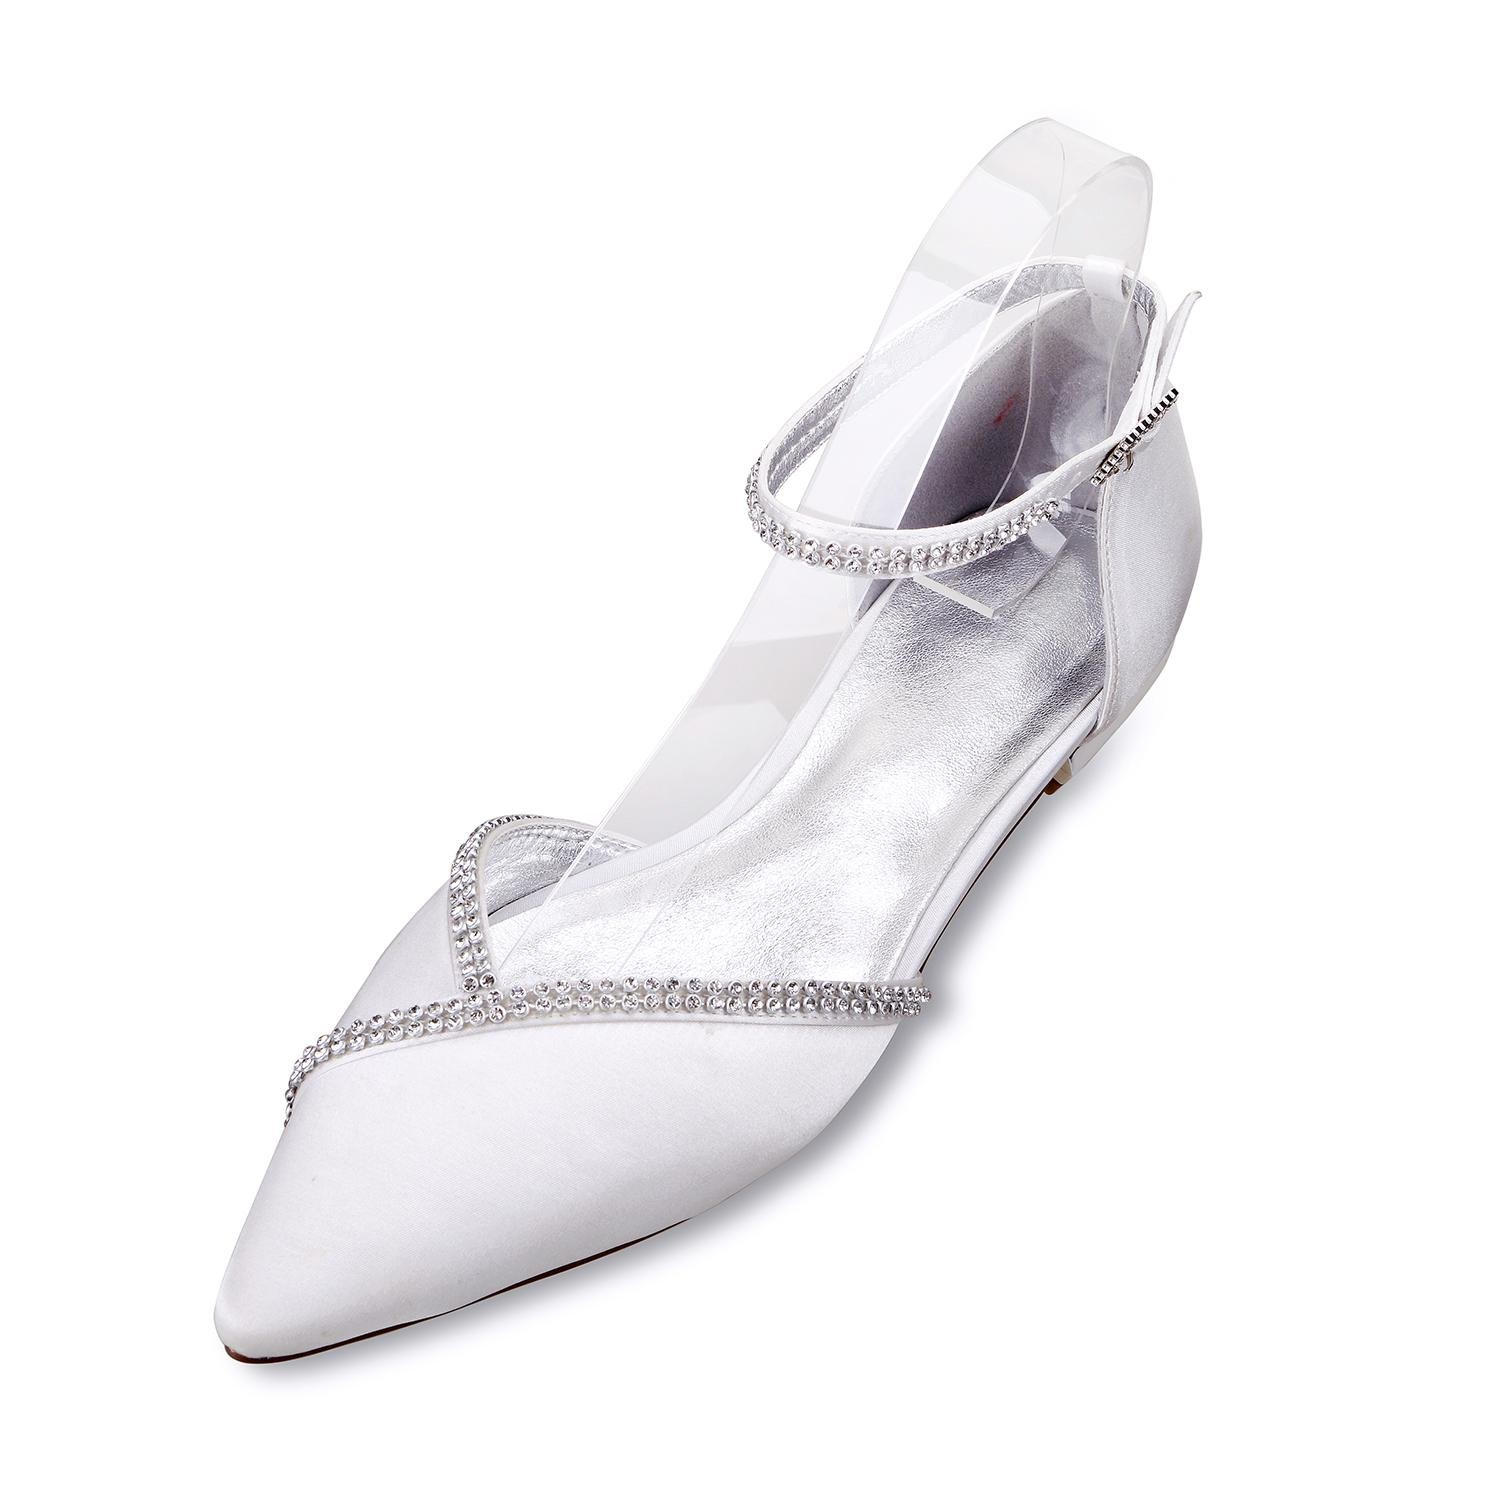 Elobaby Frauen Hochzeitsschuhe 5047-1 Prom Party Tanzschuhe Outer # & Closed Toe Comfort # Outer Champagne 3e432d